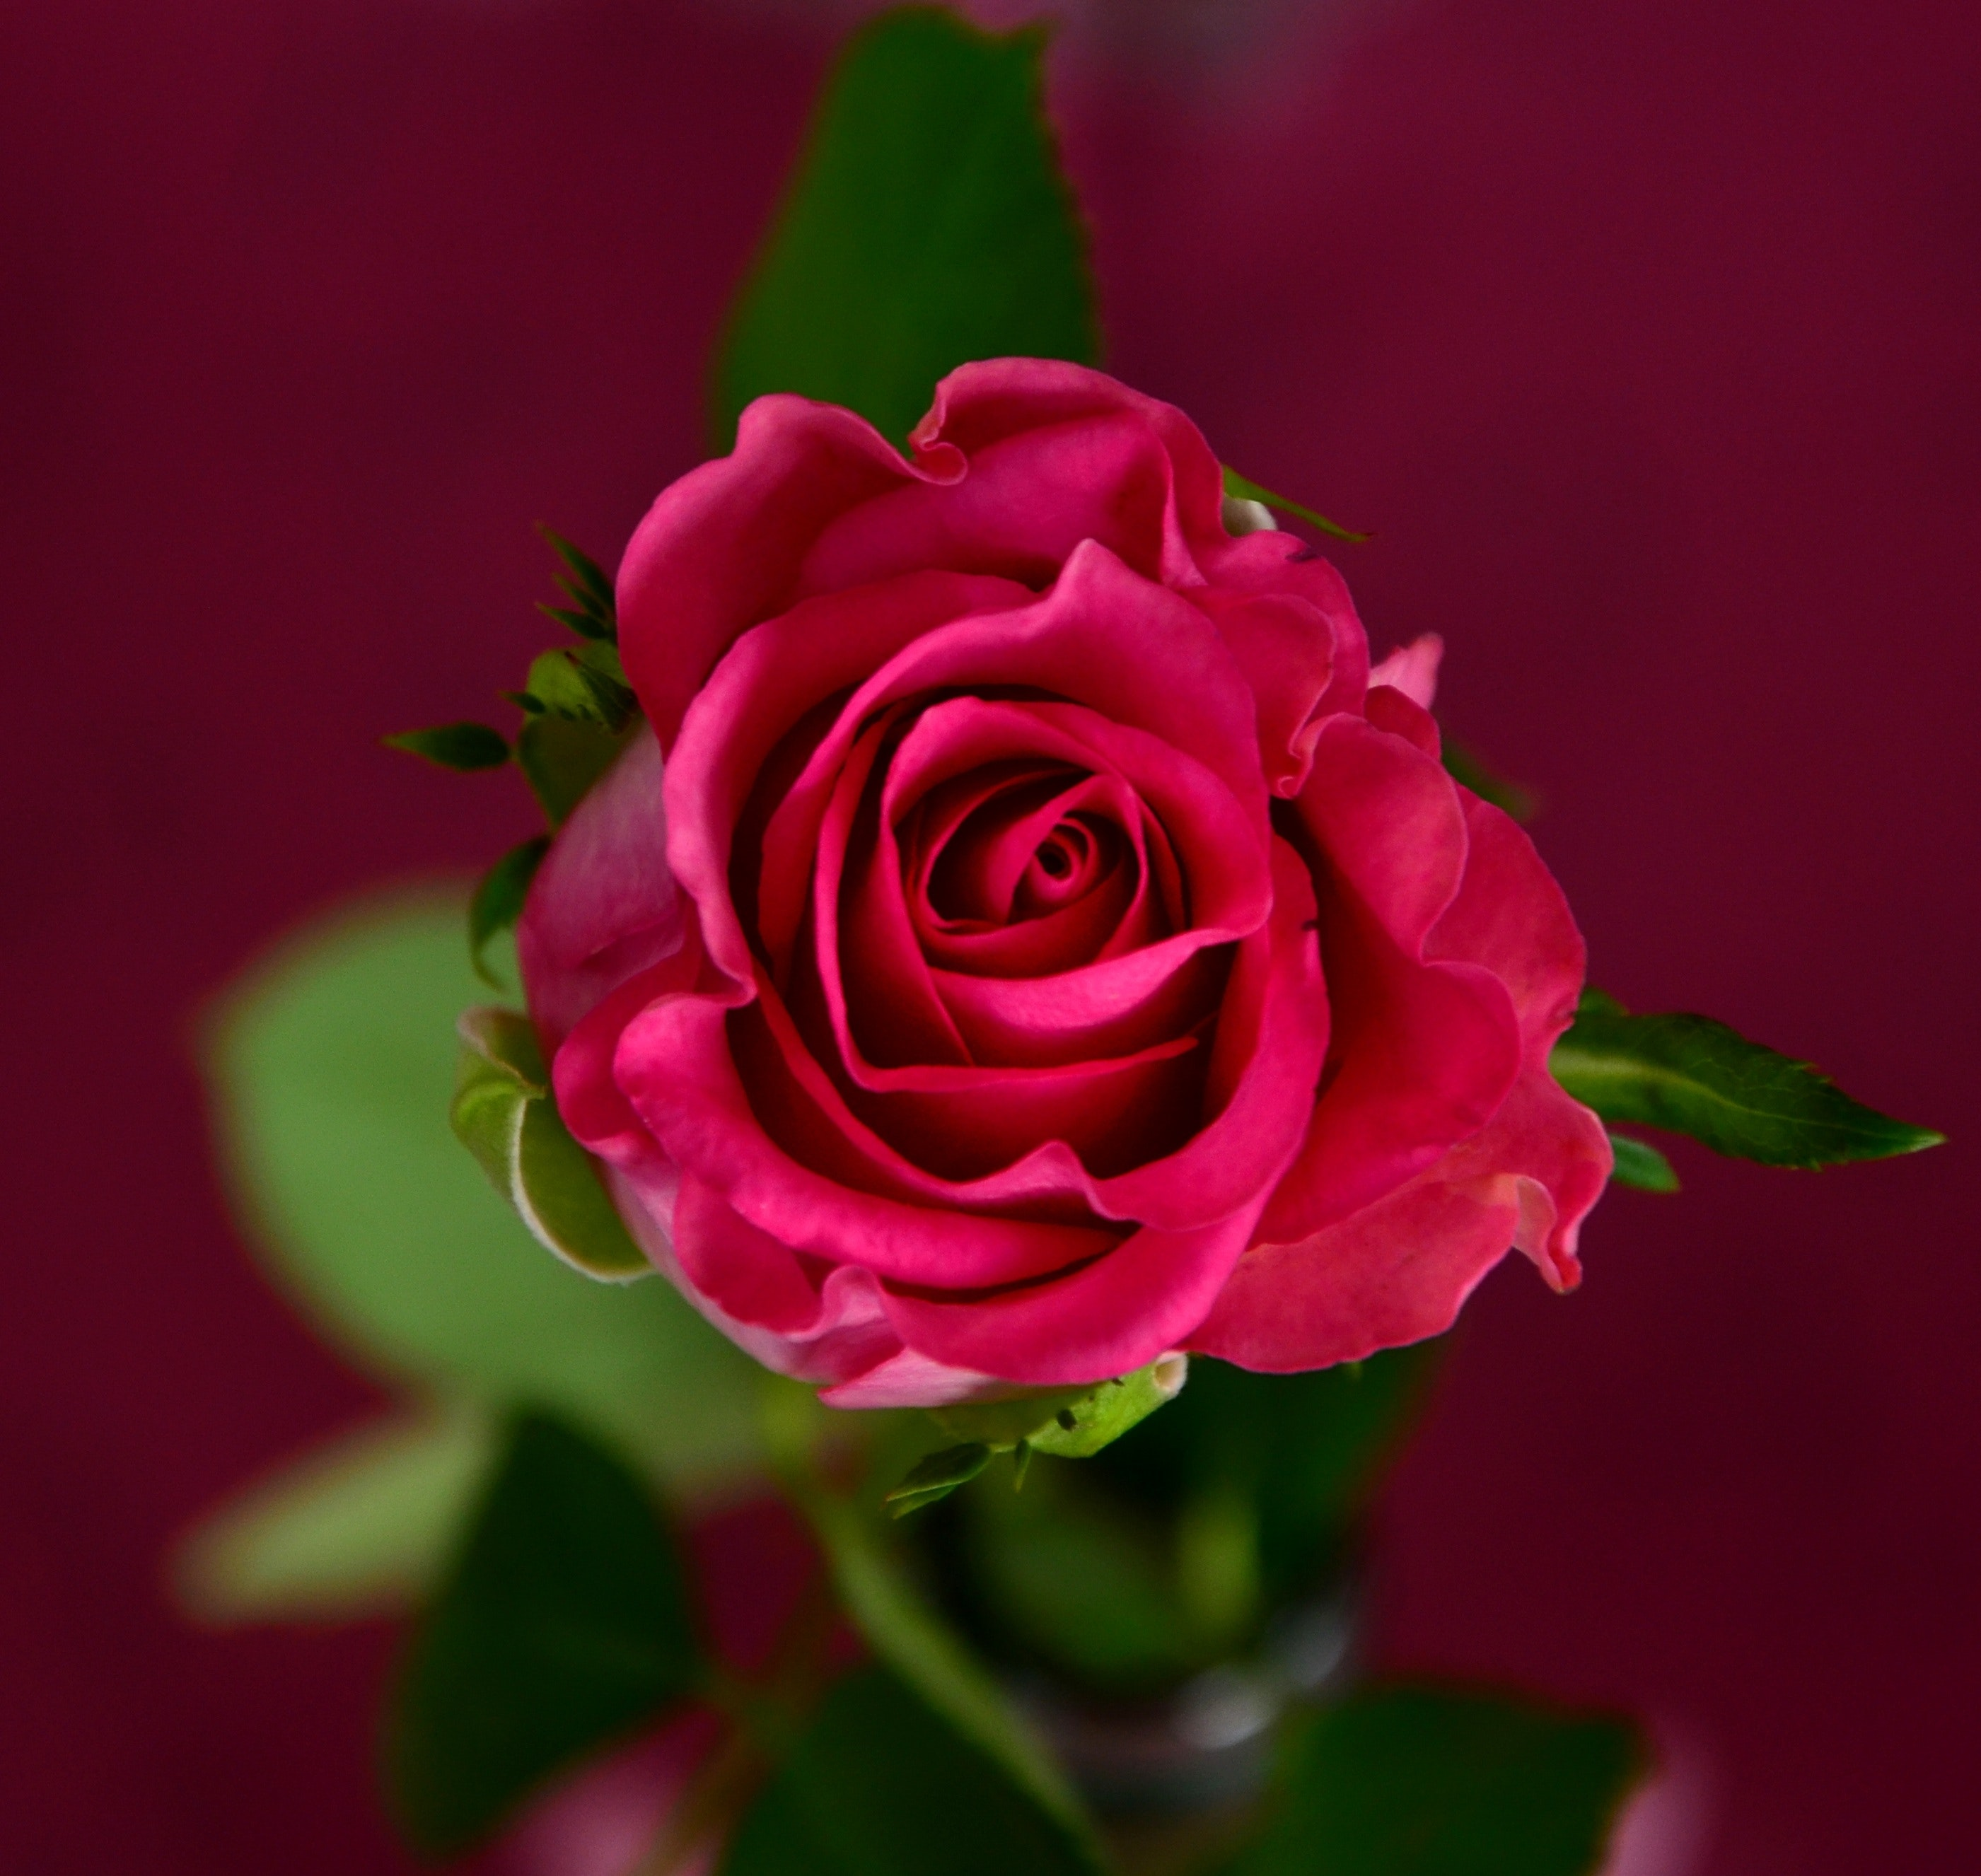 Rose images pexels free stock photos - Red rose flower hd images ...